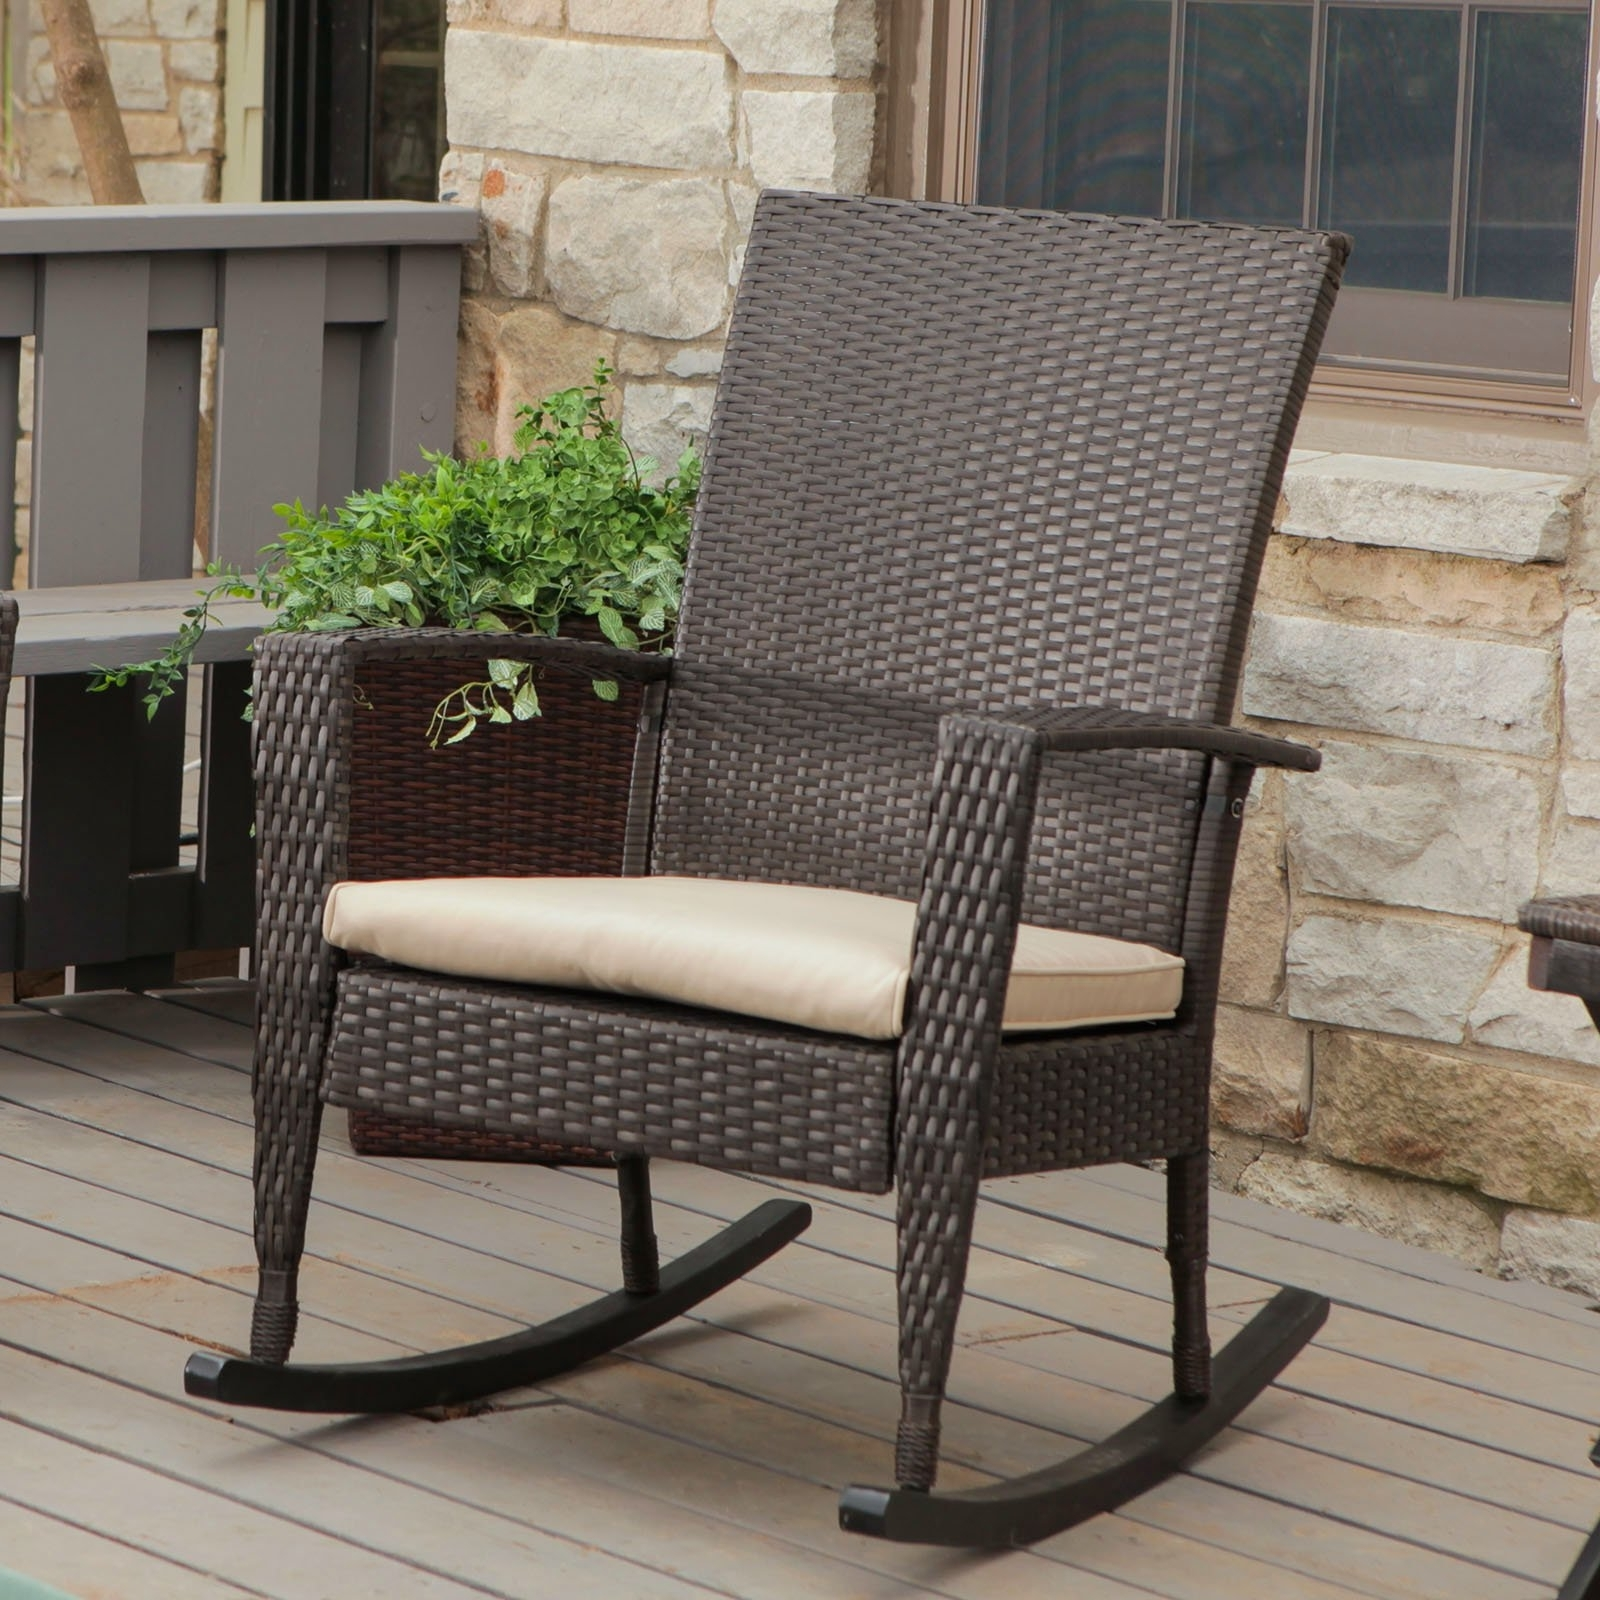 Outdoor Plastic Wicker Rocking Chairs Sale Black Chair Set White In Favorite Plastic Patio Rocking Chairs (View 4 of 15)